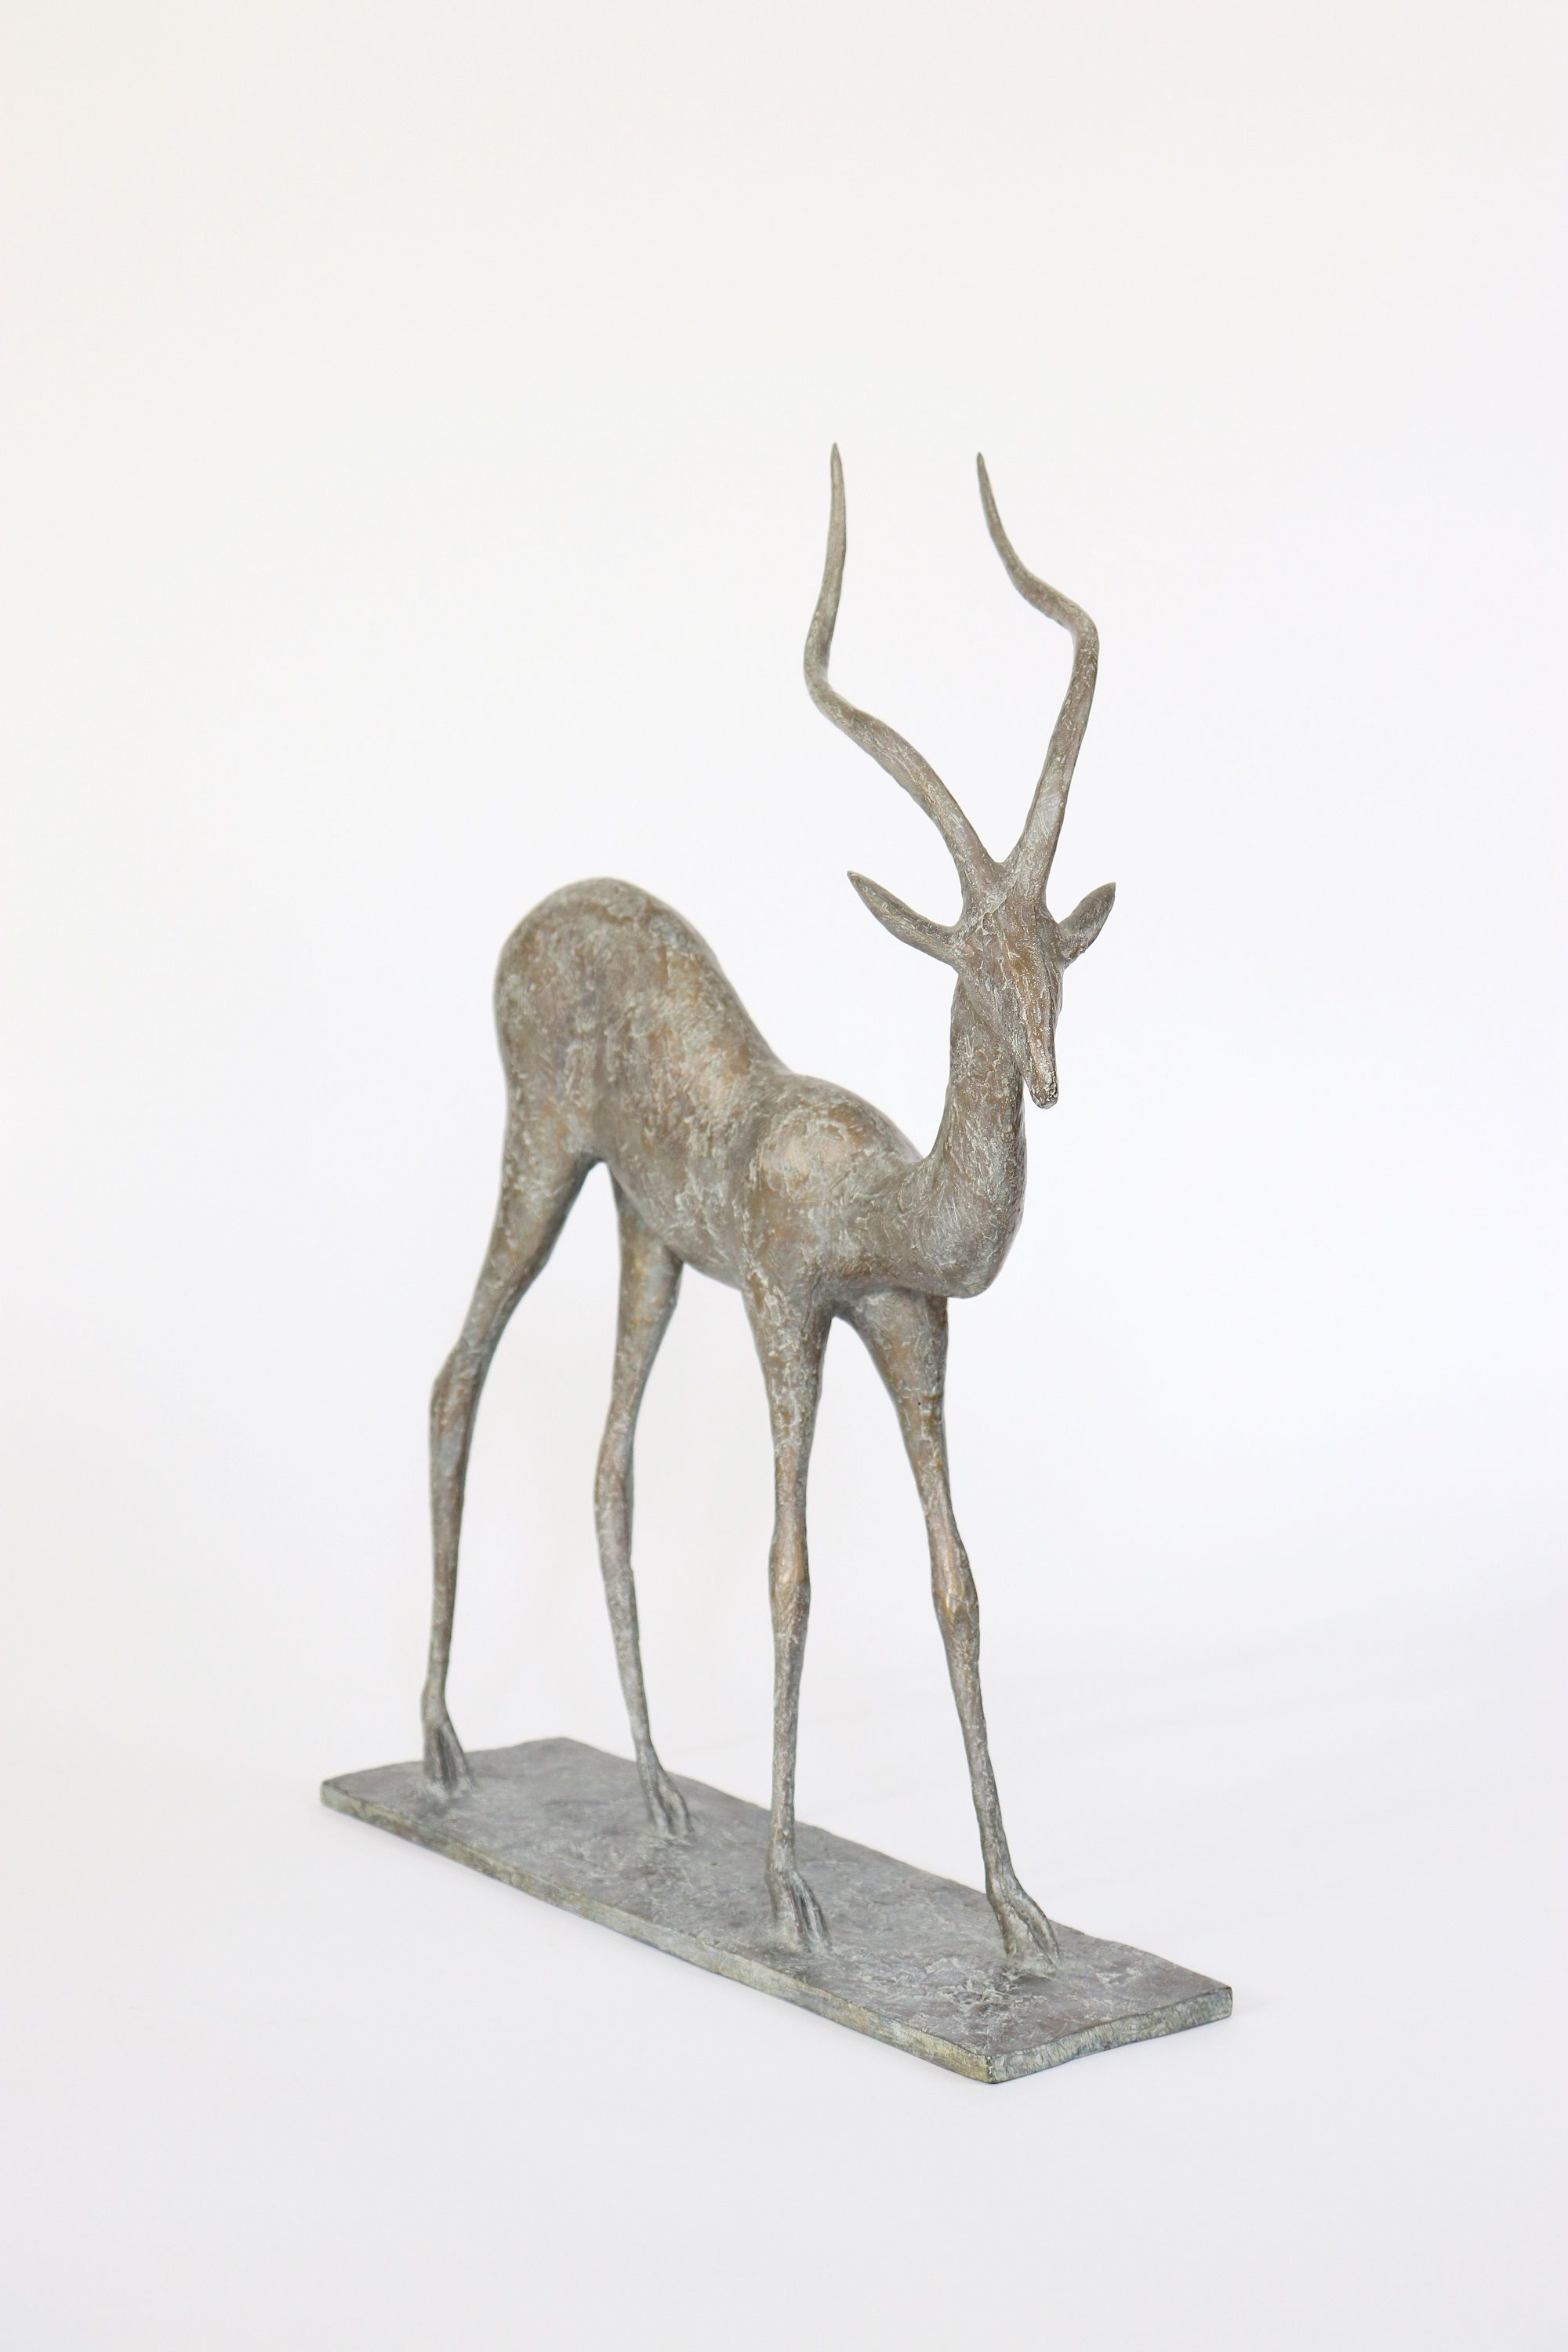 Gazelle III,Pierre Yermia,Sculpture, detail 2